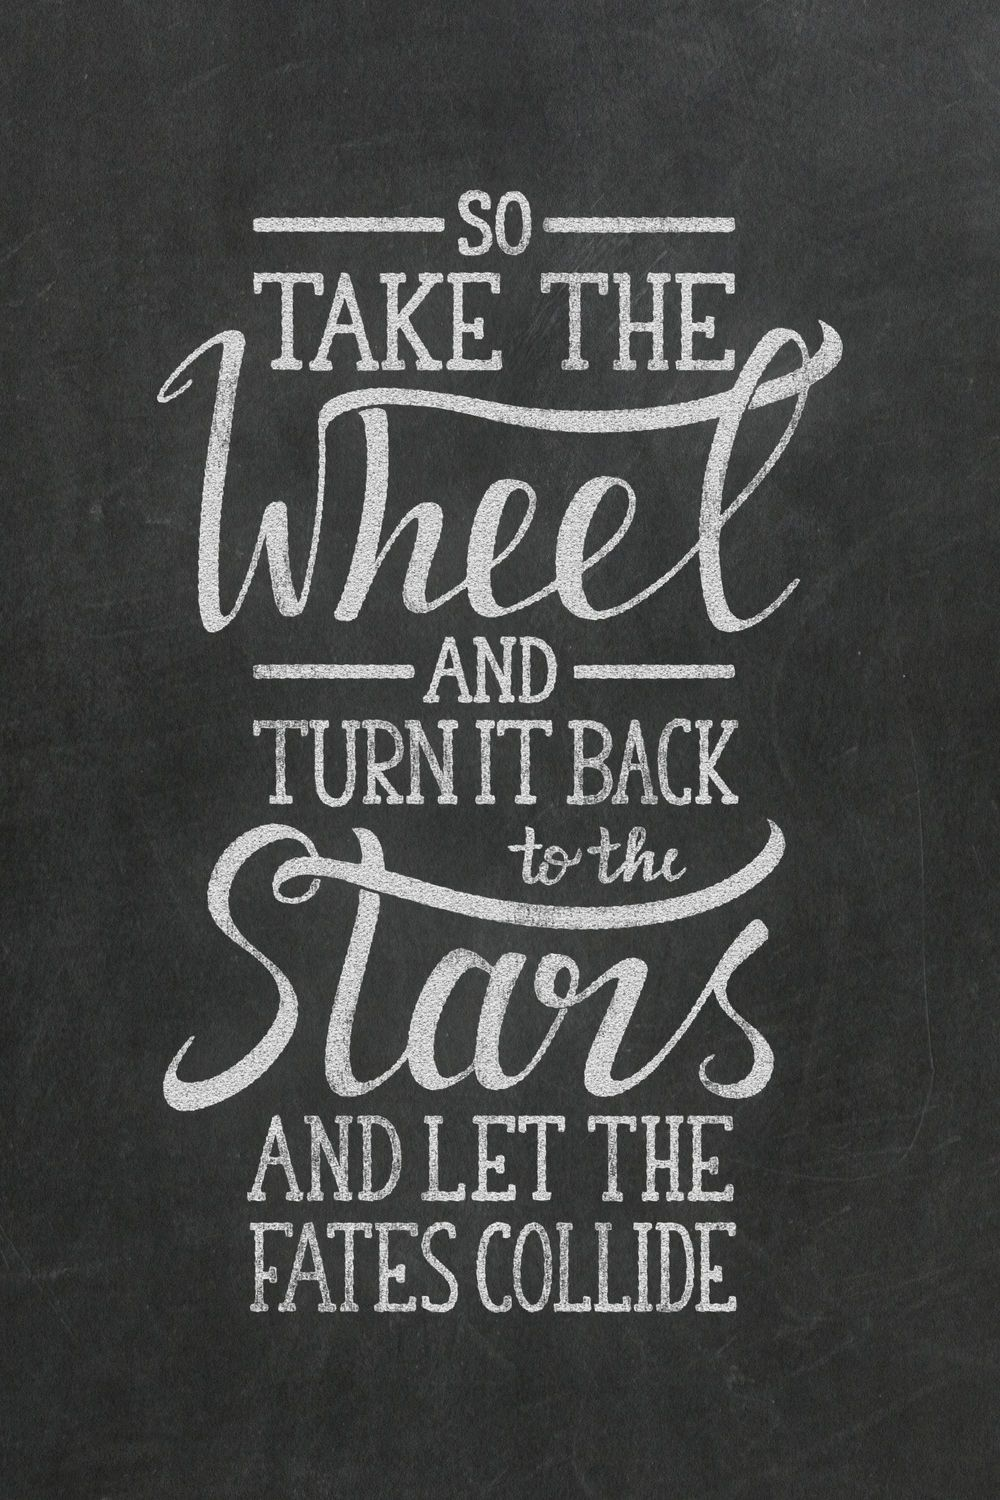 Take the Wheel... - image 2 - student project